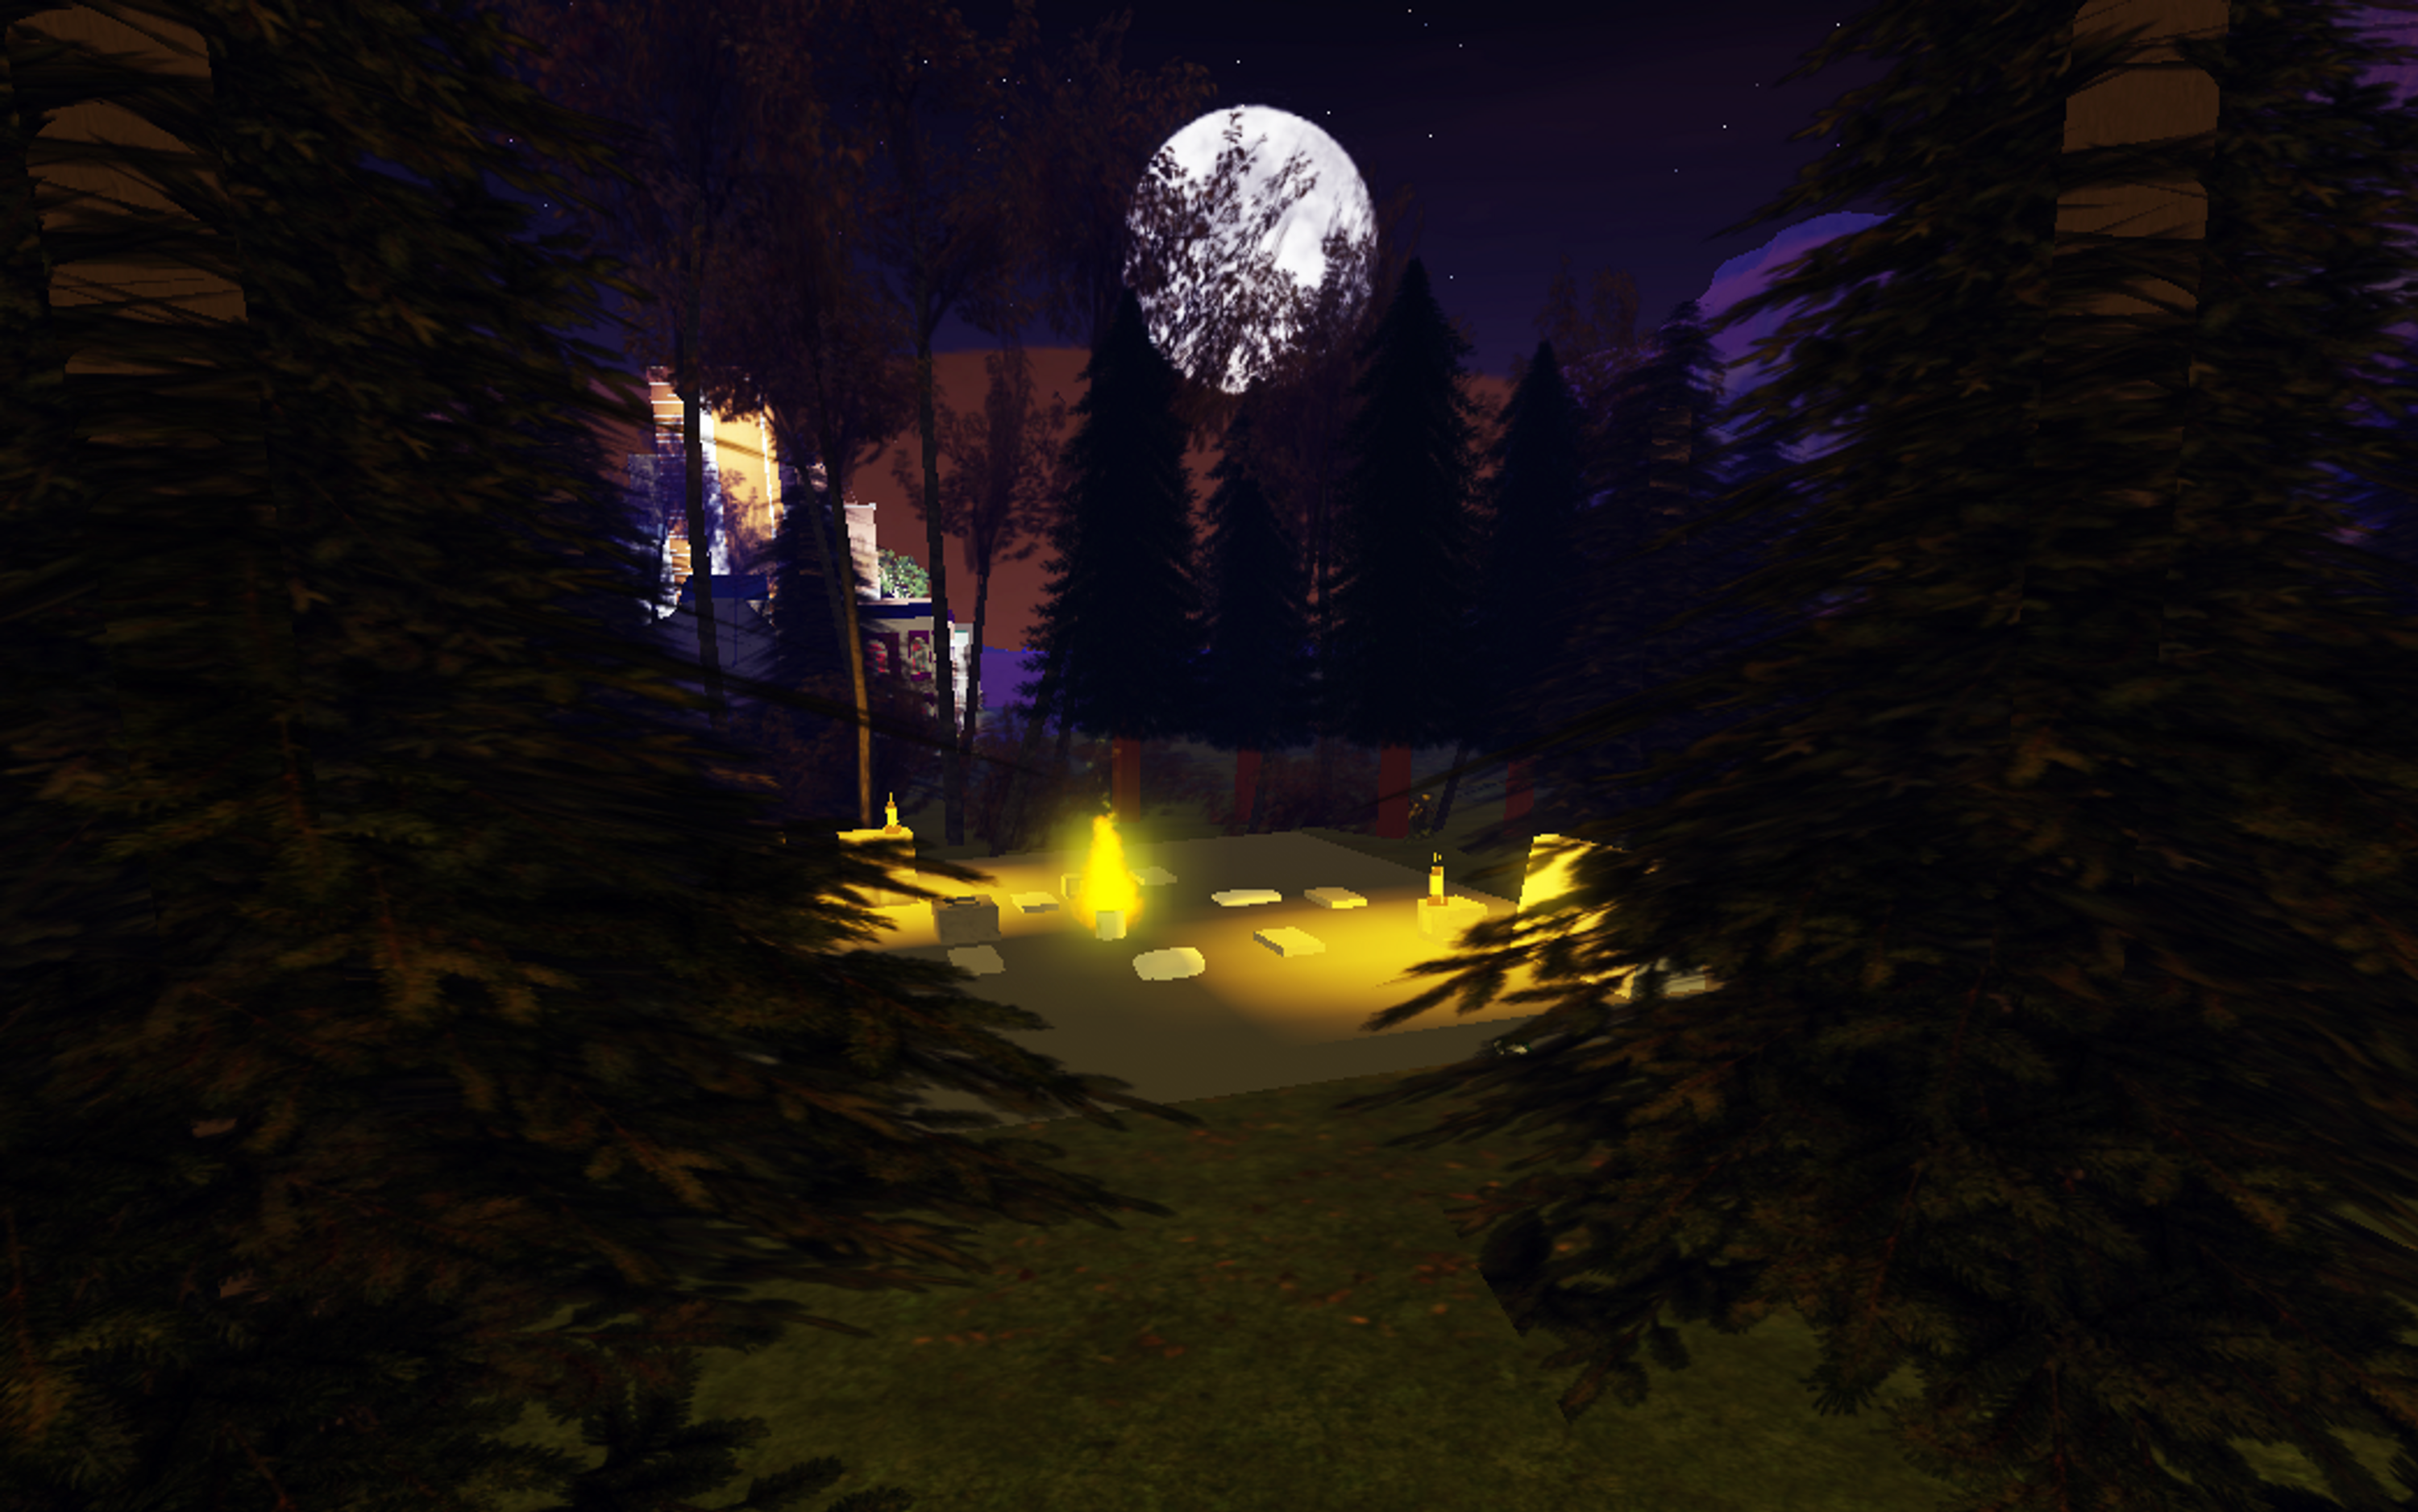 A screenshot of the author's birthday cement slab in Roblox, with a big white moon rising over a glowing campfire.